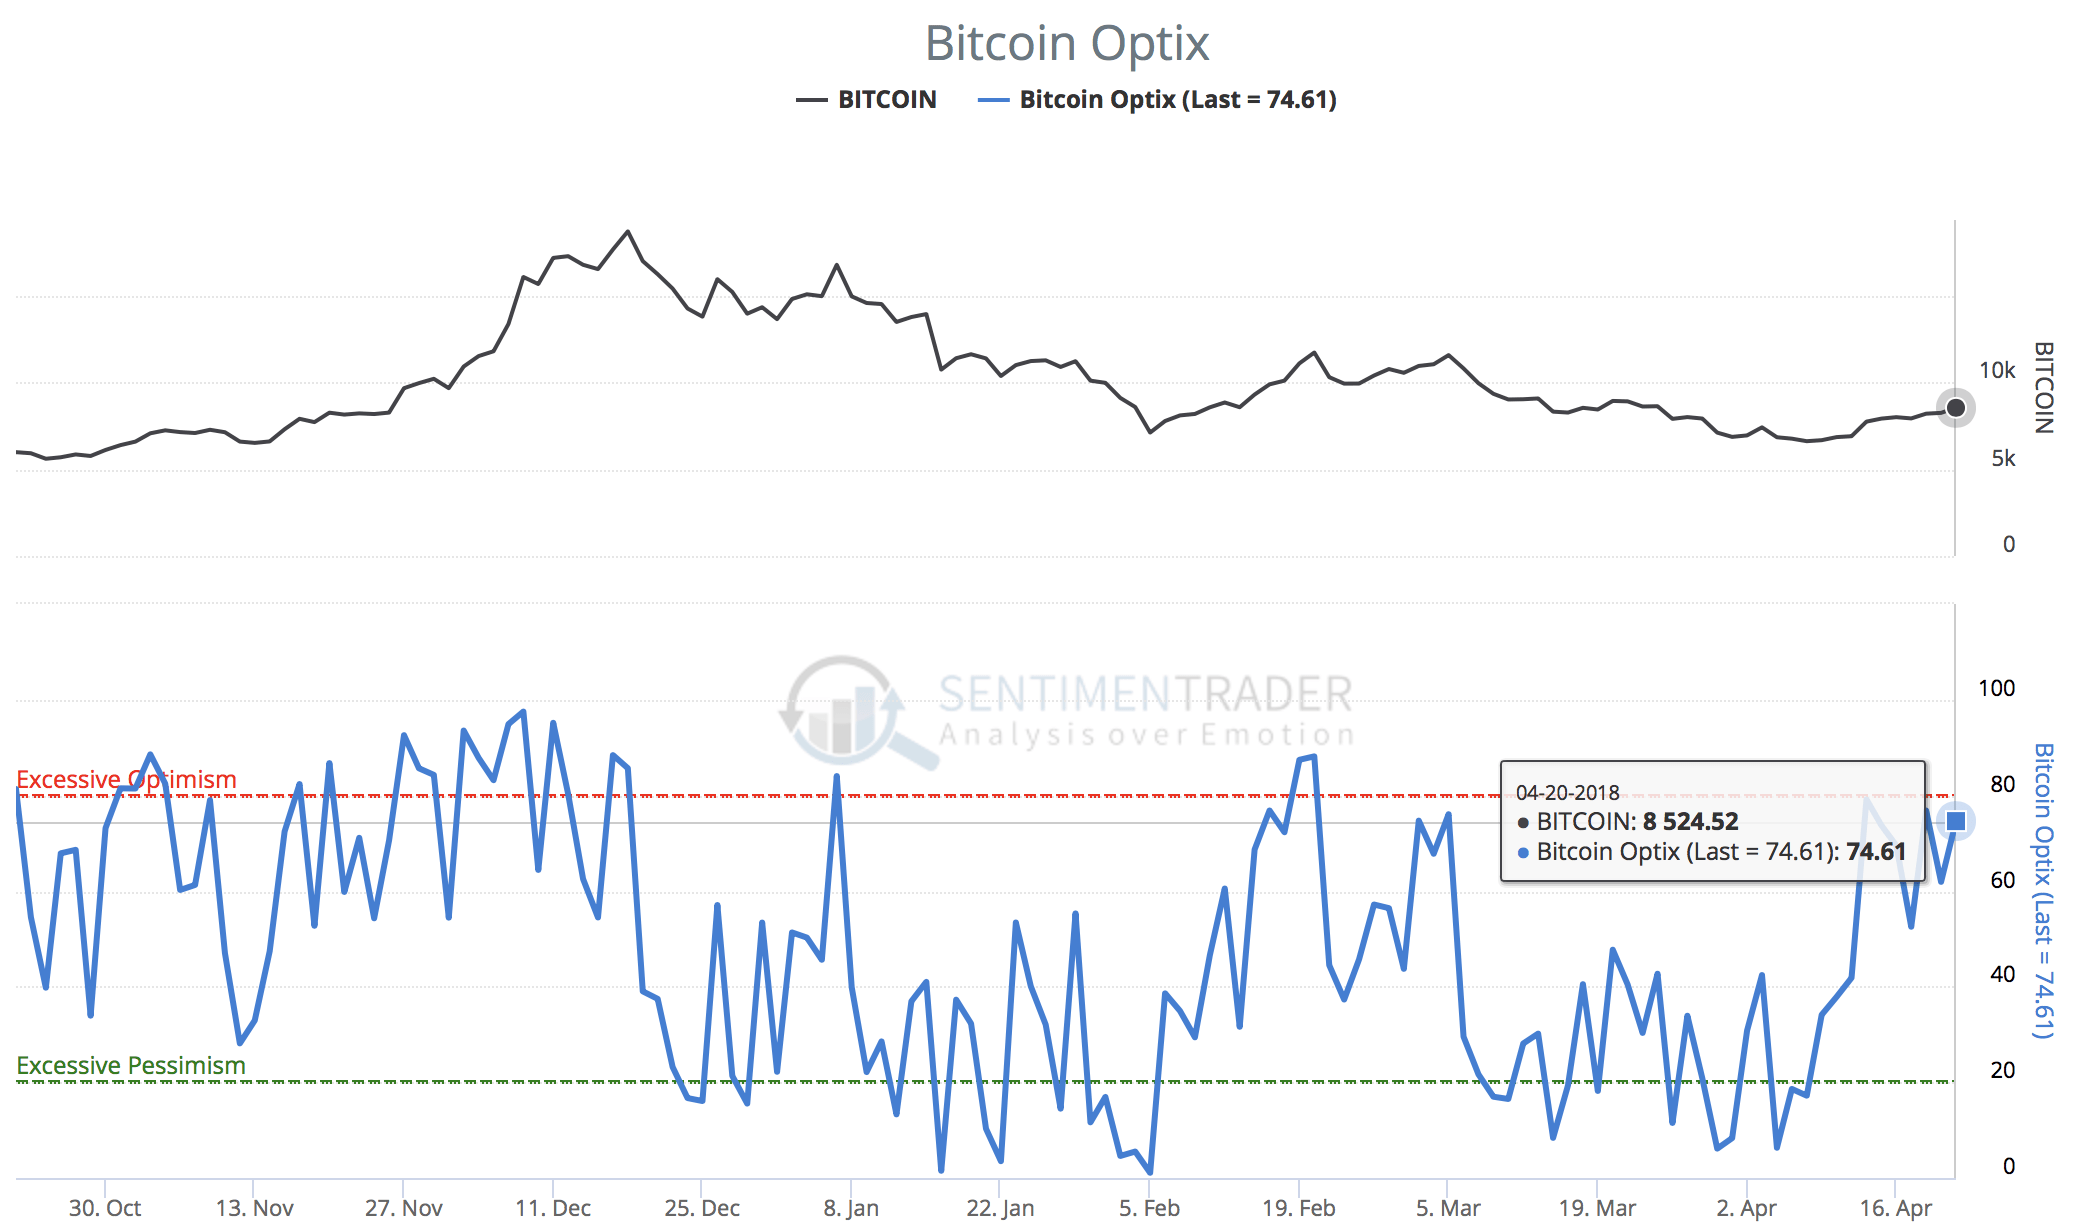 Bitcoin Optix 210418